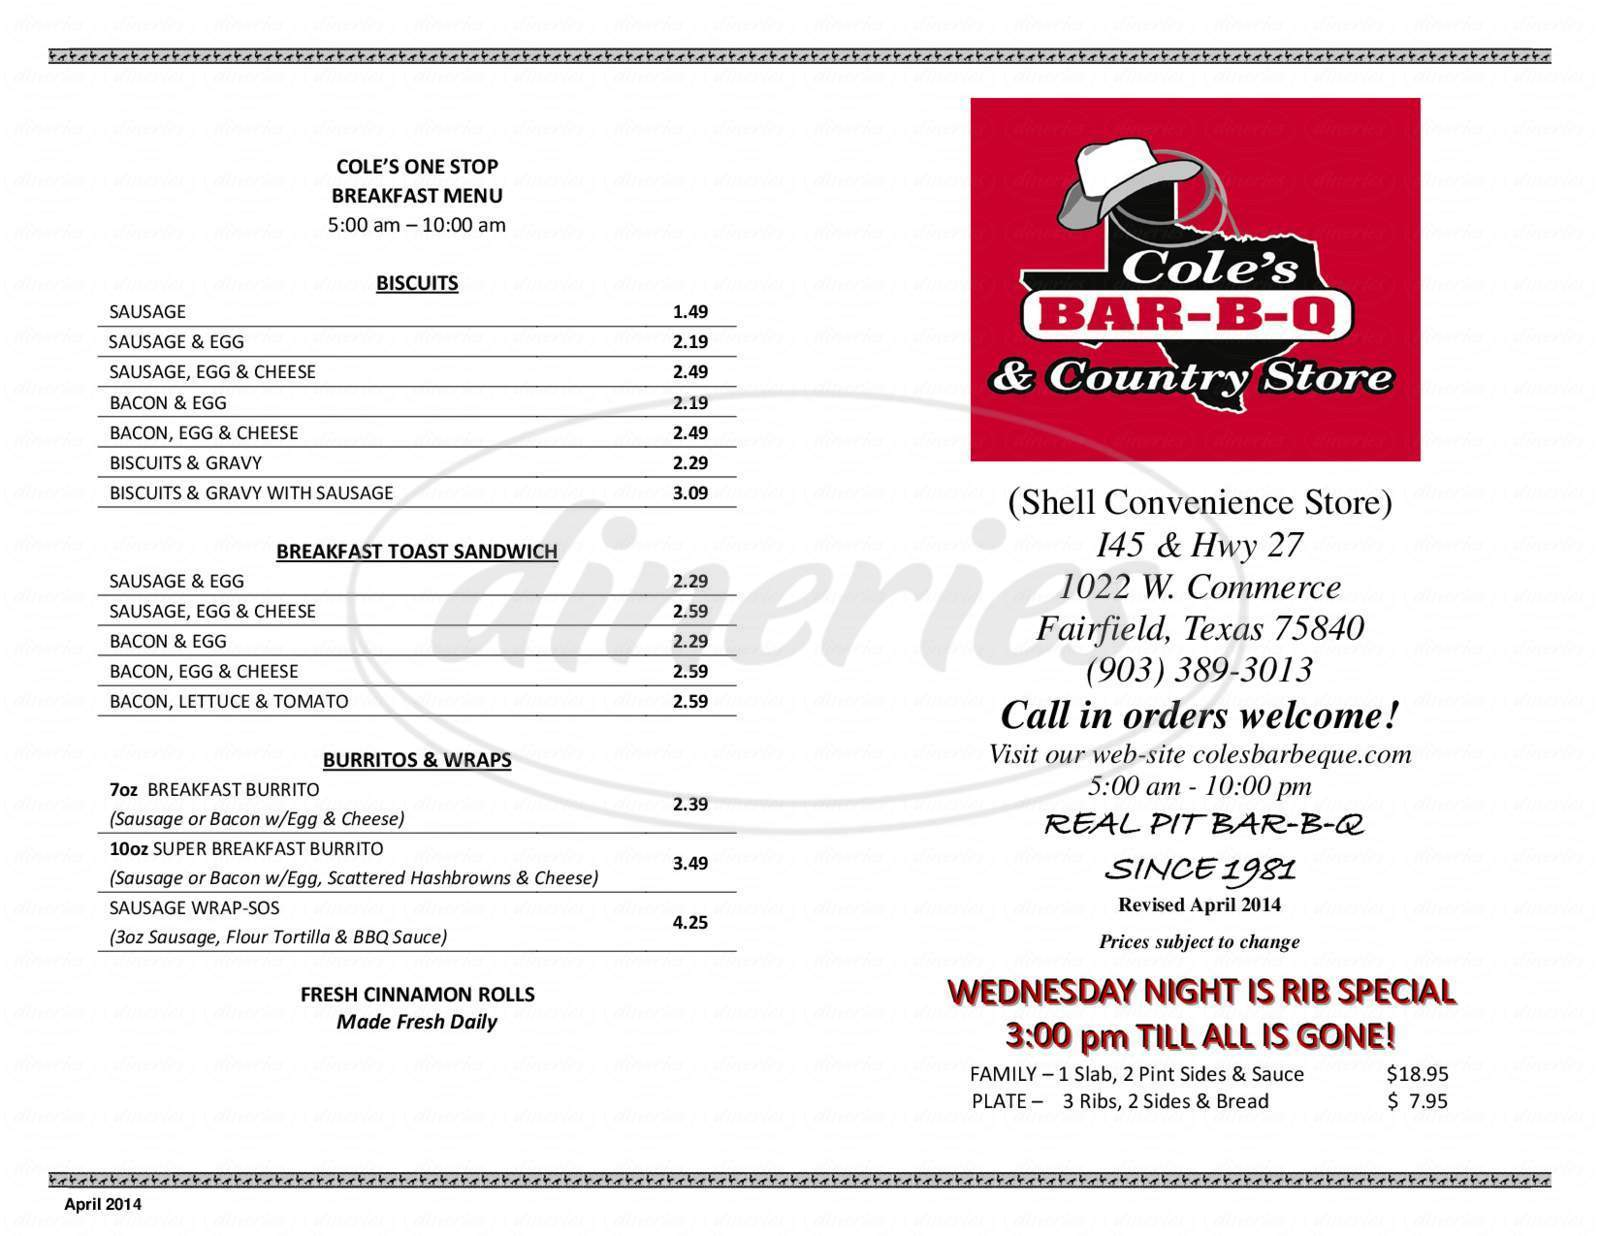 menu for Cole's Bar-B-Q & Country Store